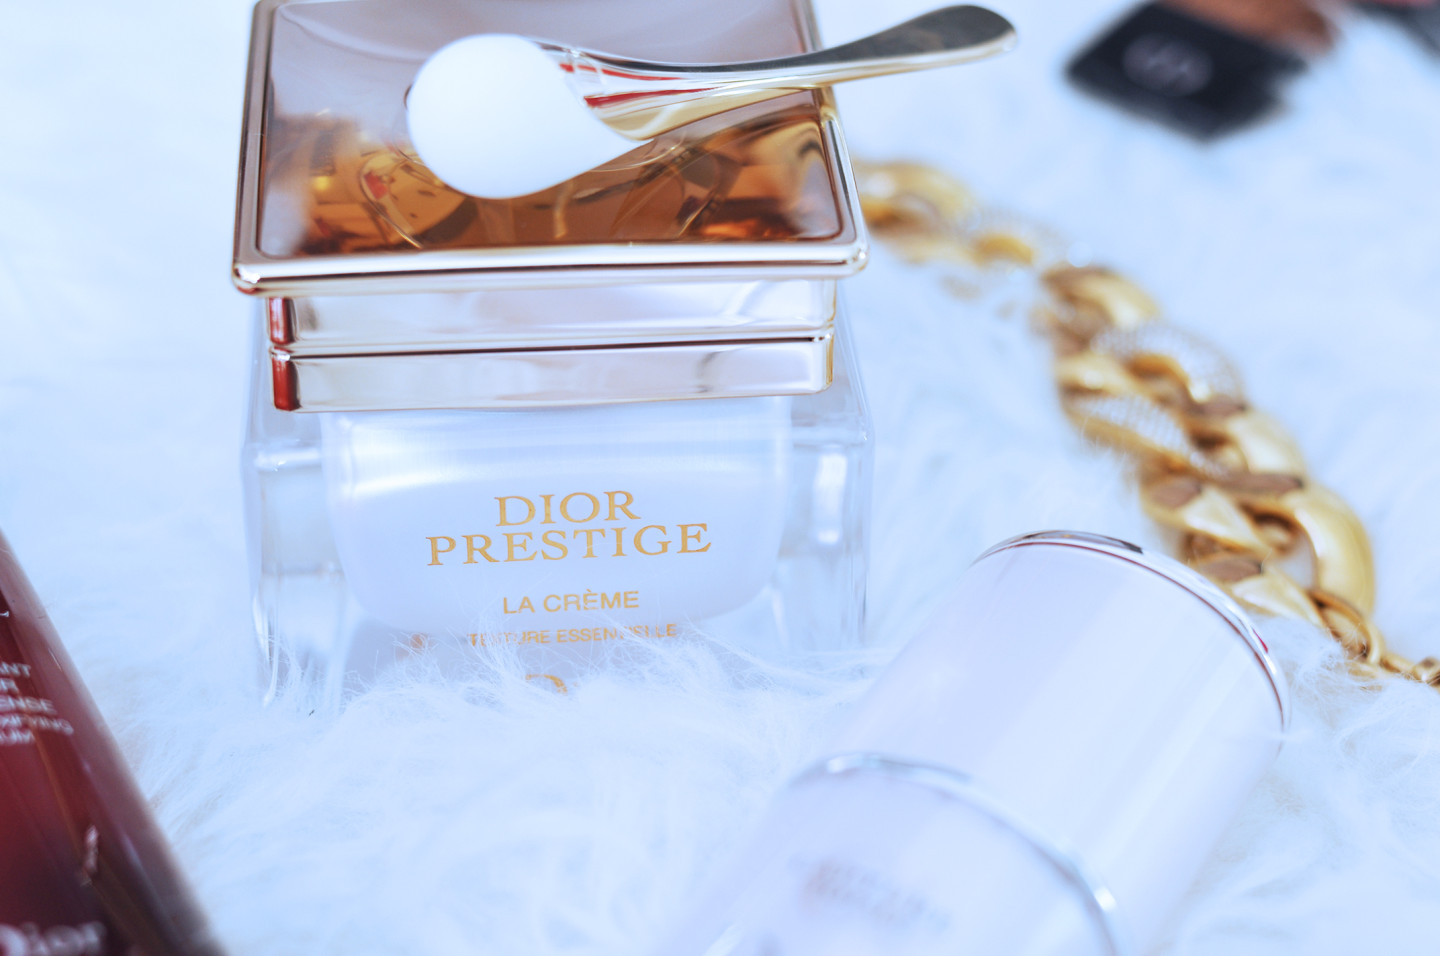 dior-prestige-la-creme-valentina-coco-fashion-blogger-beauty-paris